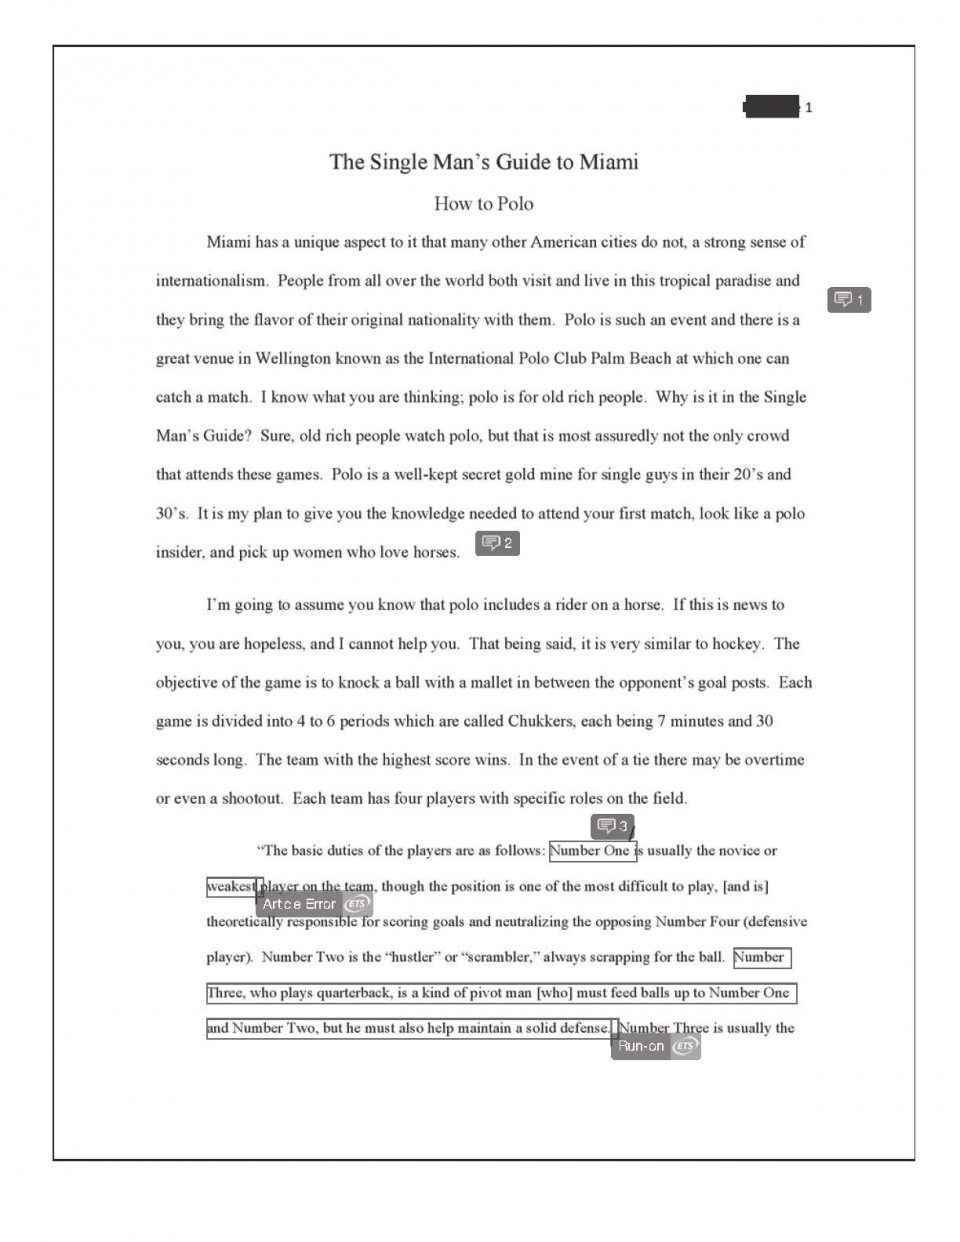 007 Informative Essay Kinds Of Writing Types Essays The Center In Hindi Final How To Polo Redacted P Pdf Task Slideshare Ppt Withs Wikipedia Dreaded Prompts 5th Grade 9th Graphic Organizer 960